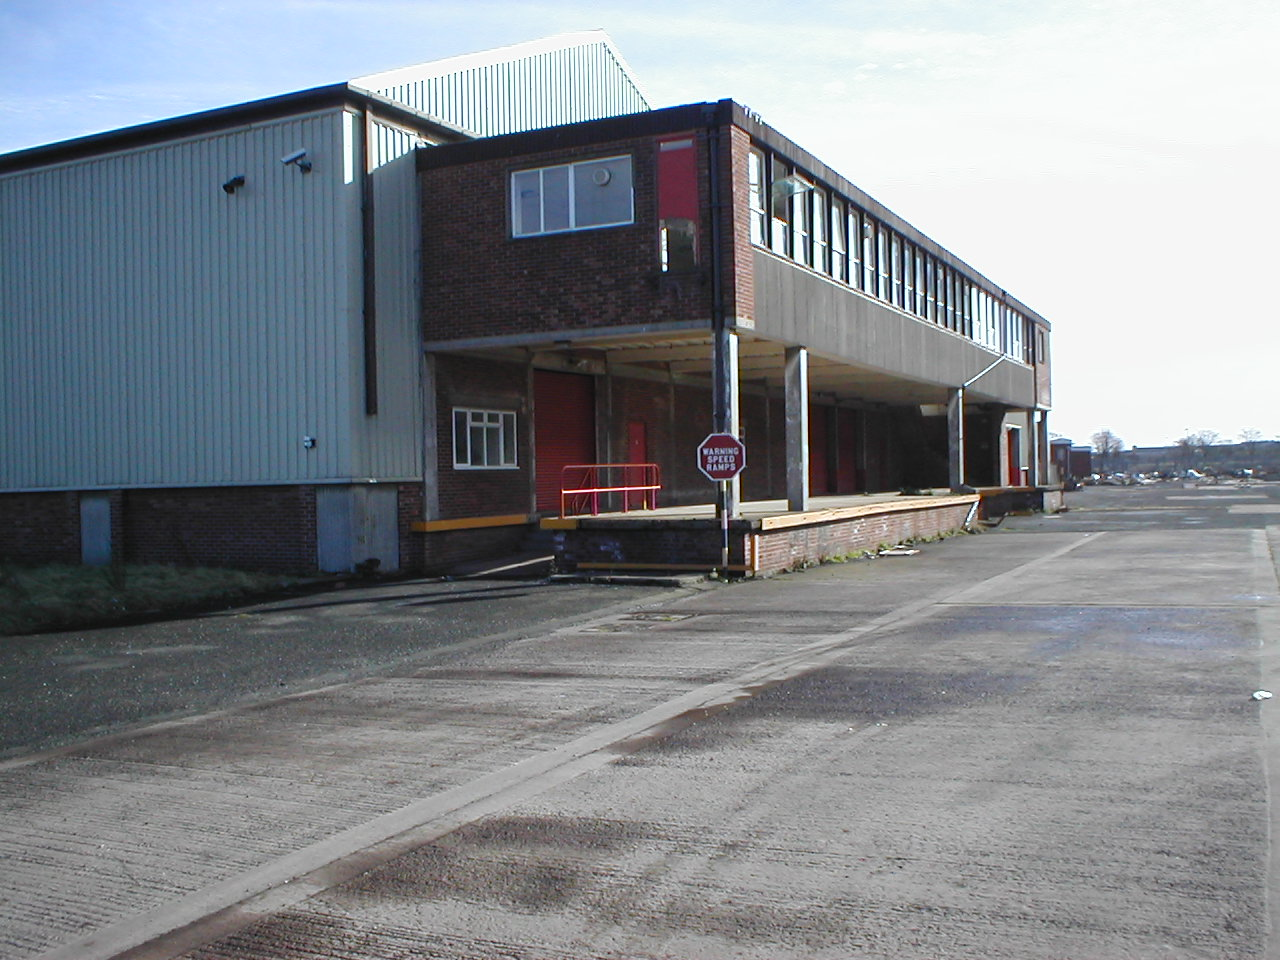 The Ashington workshops